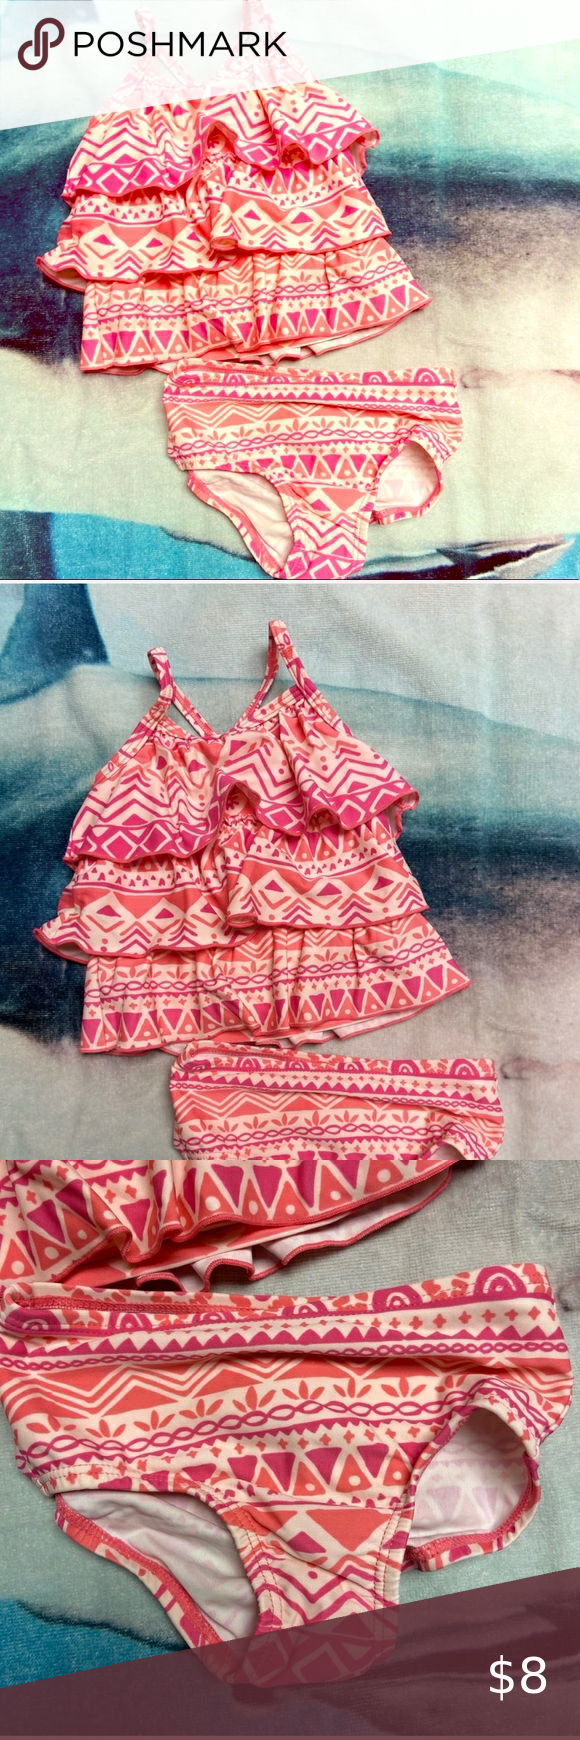 NWT BABY GIRL 2pc BATHING SUIT SIZE 3-6 MONTHS